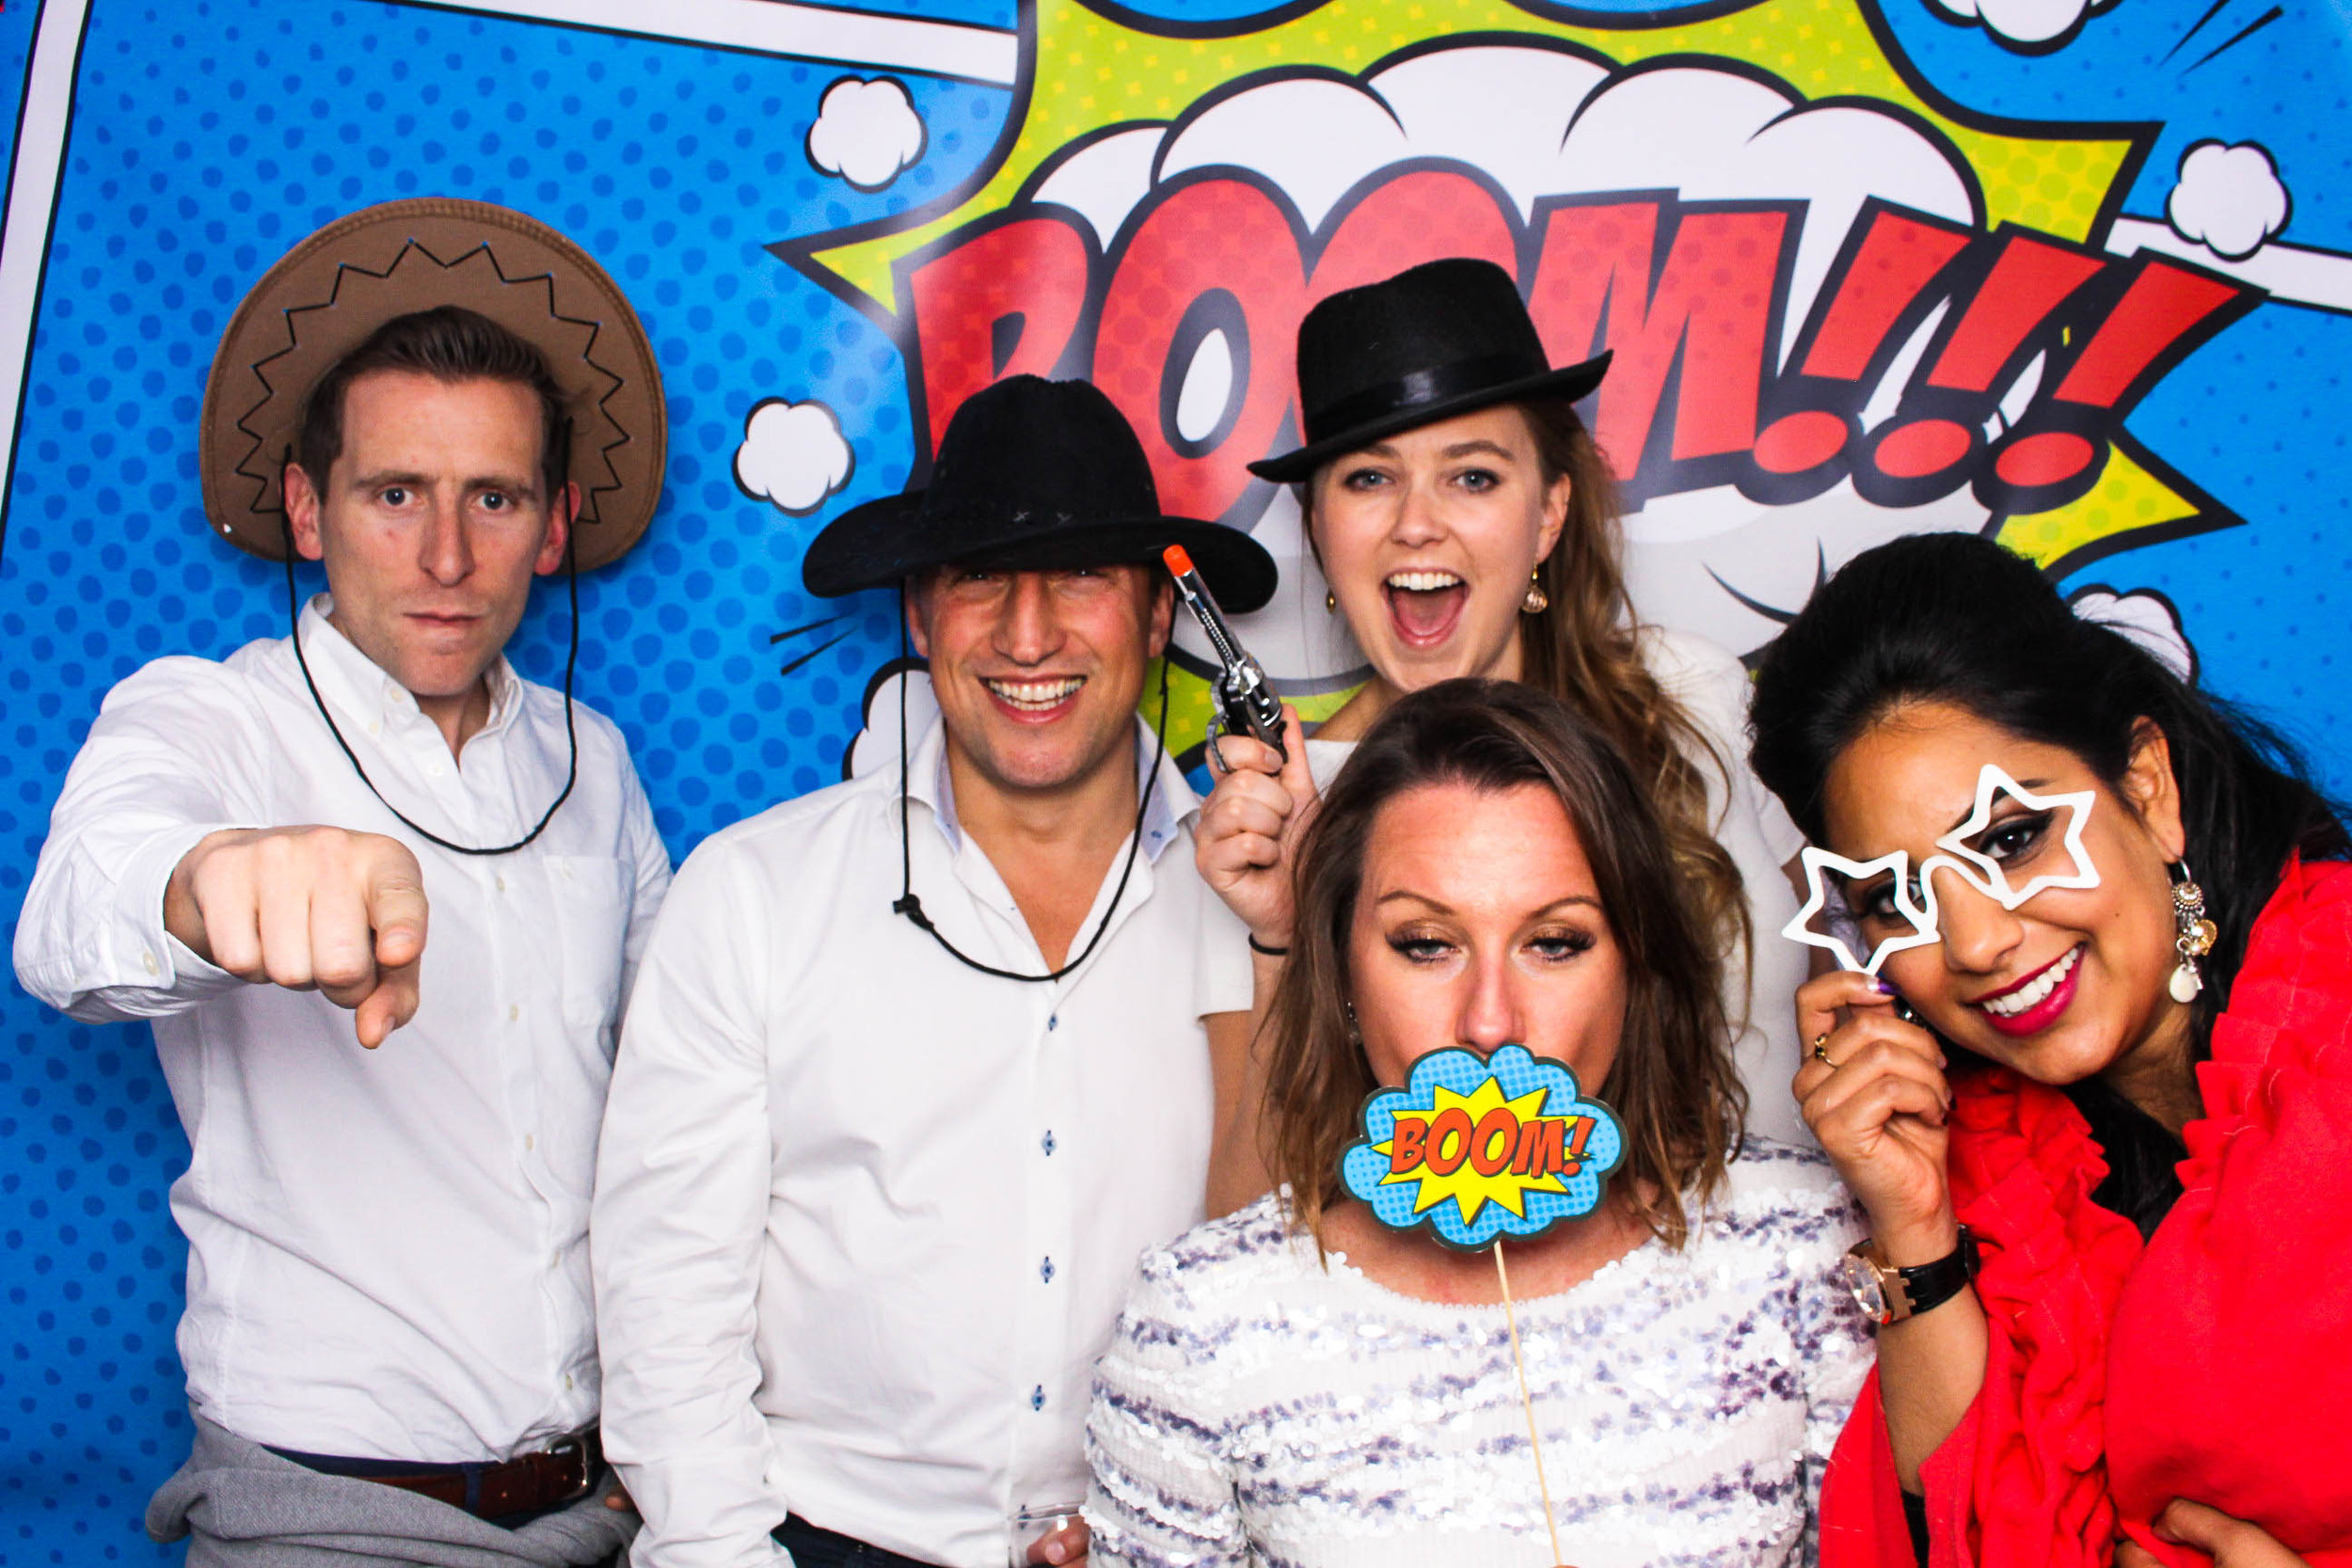 Fotoauto Photo Booth Hire - Shop Direct-273.jpg